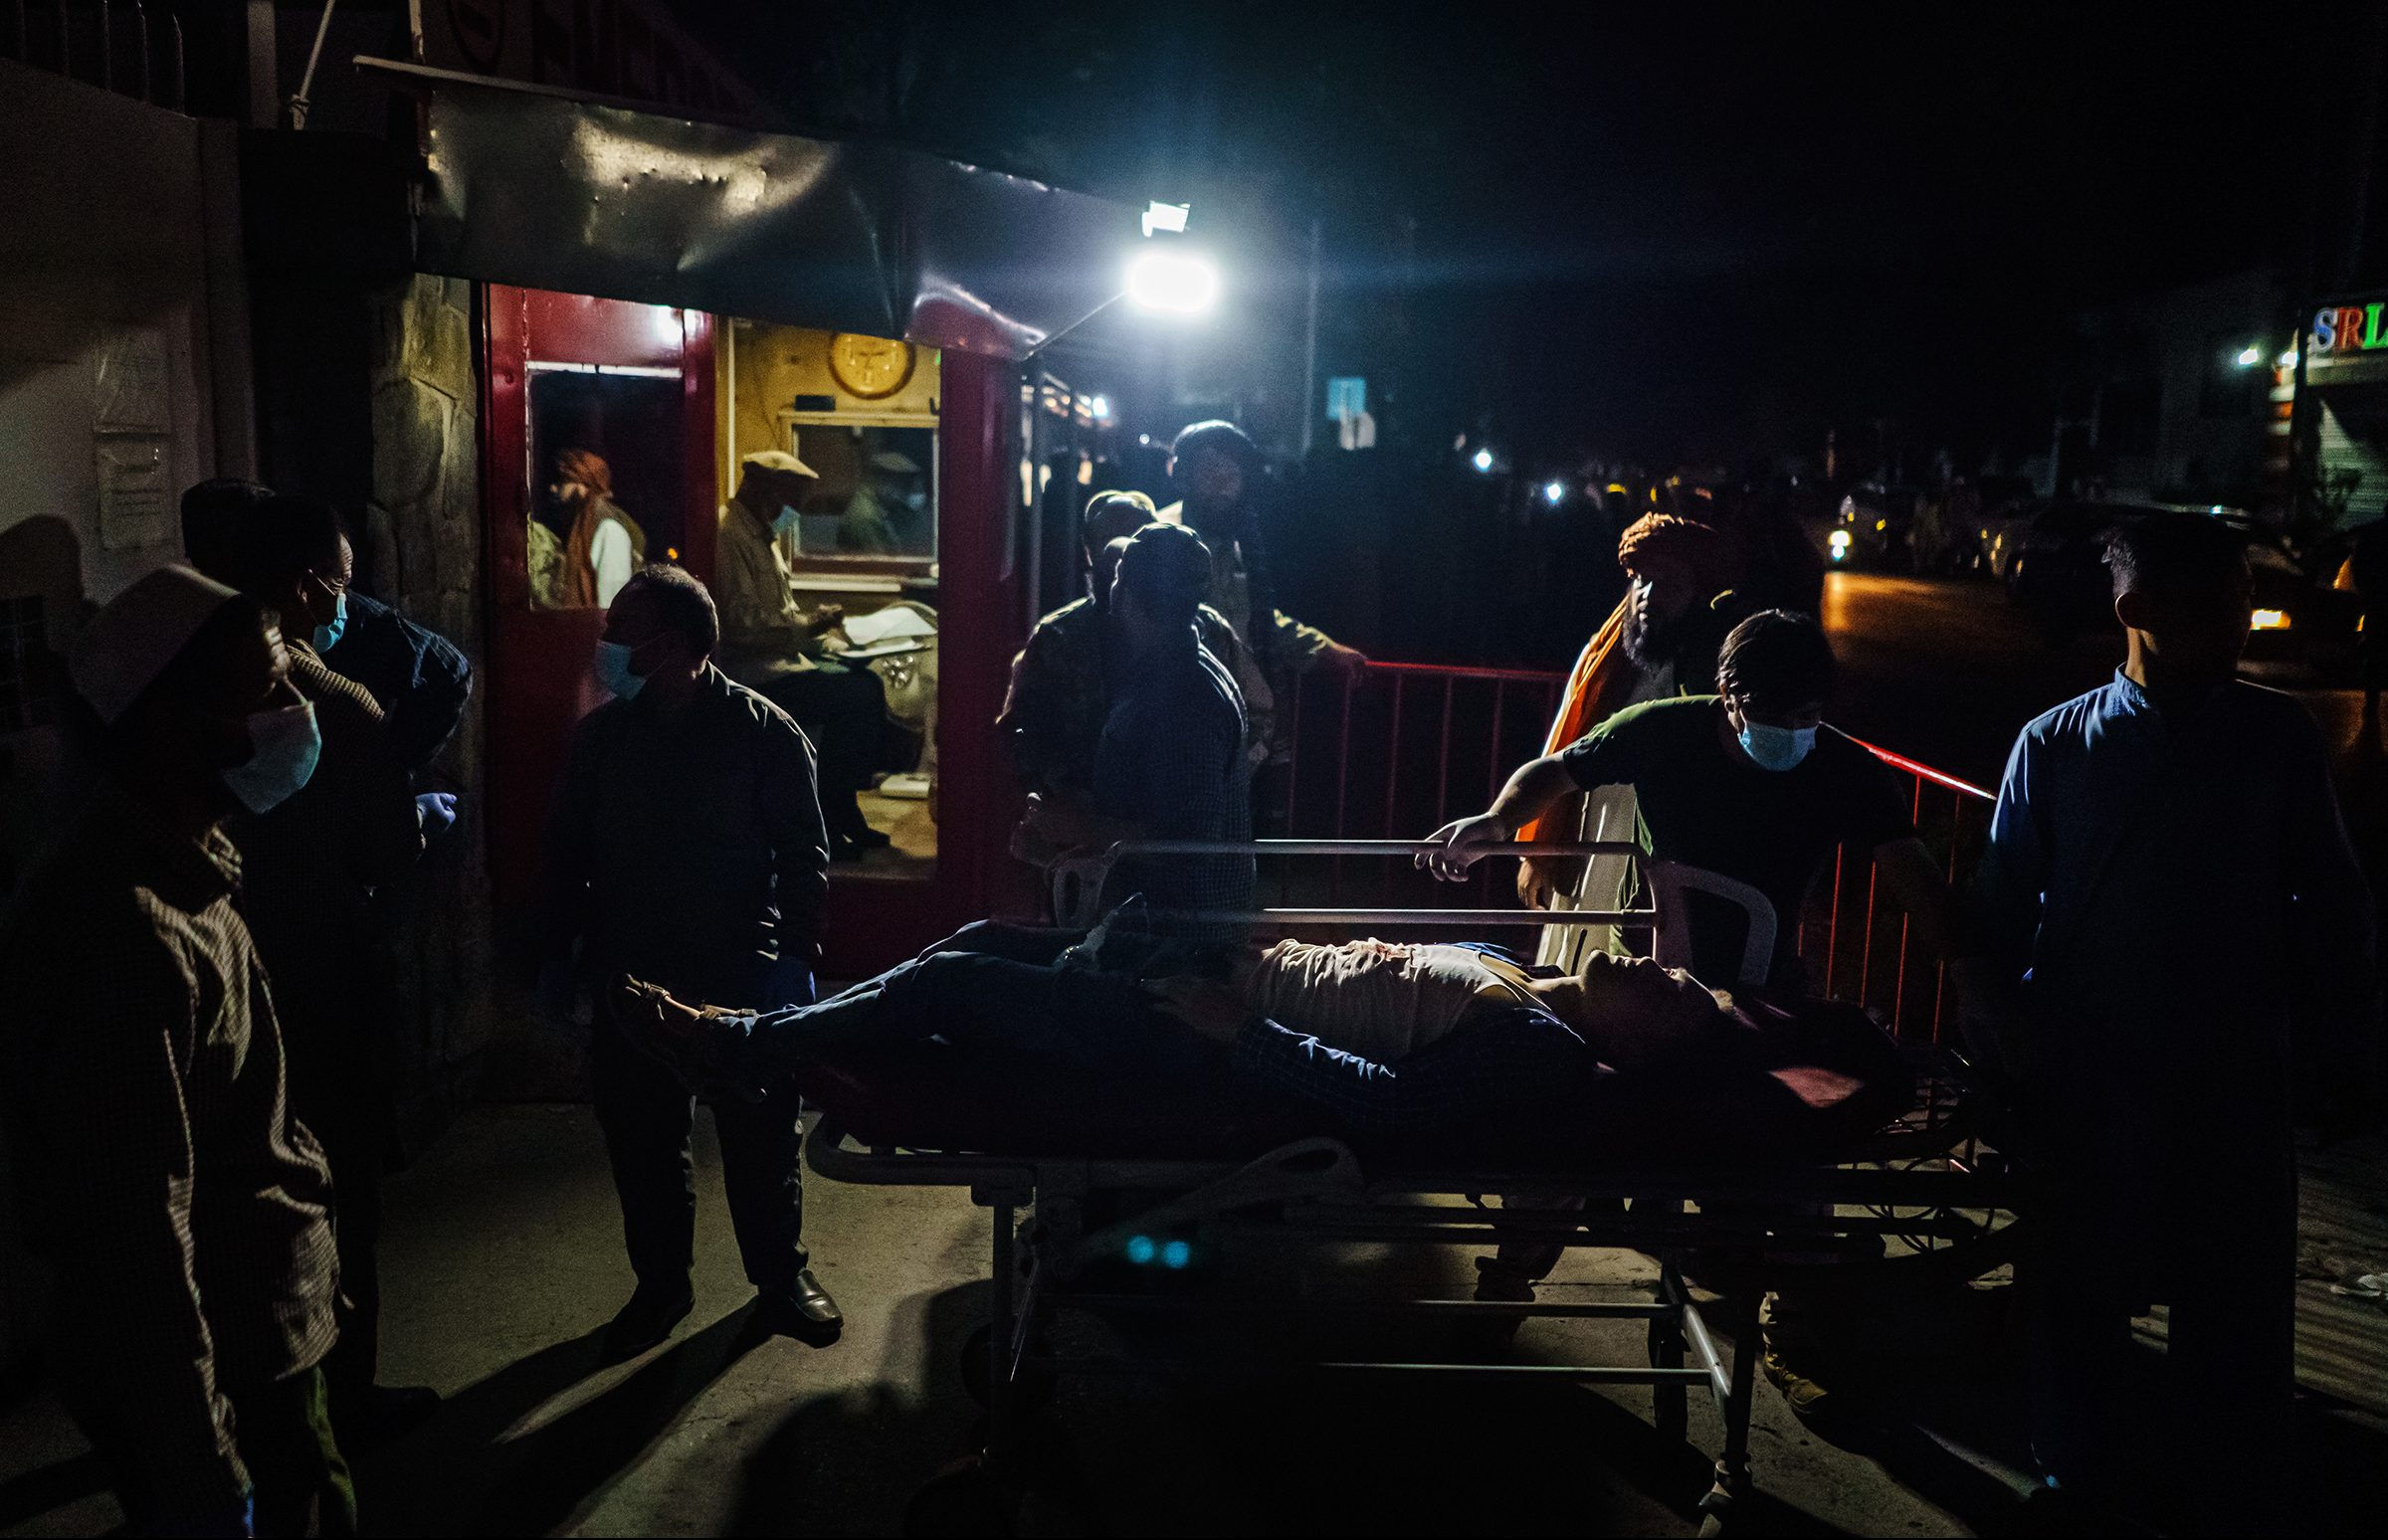 Hospital staff help bring in a wounded patient brought by an ambulance at an emergency hospital in Kabul, Aug. 26. Twin bombings struck near the entrance to Kabul's airport on Thursday.